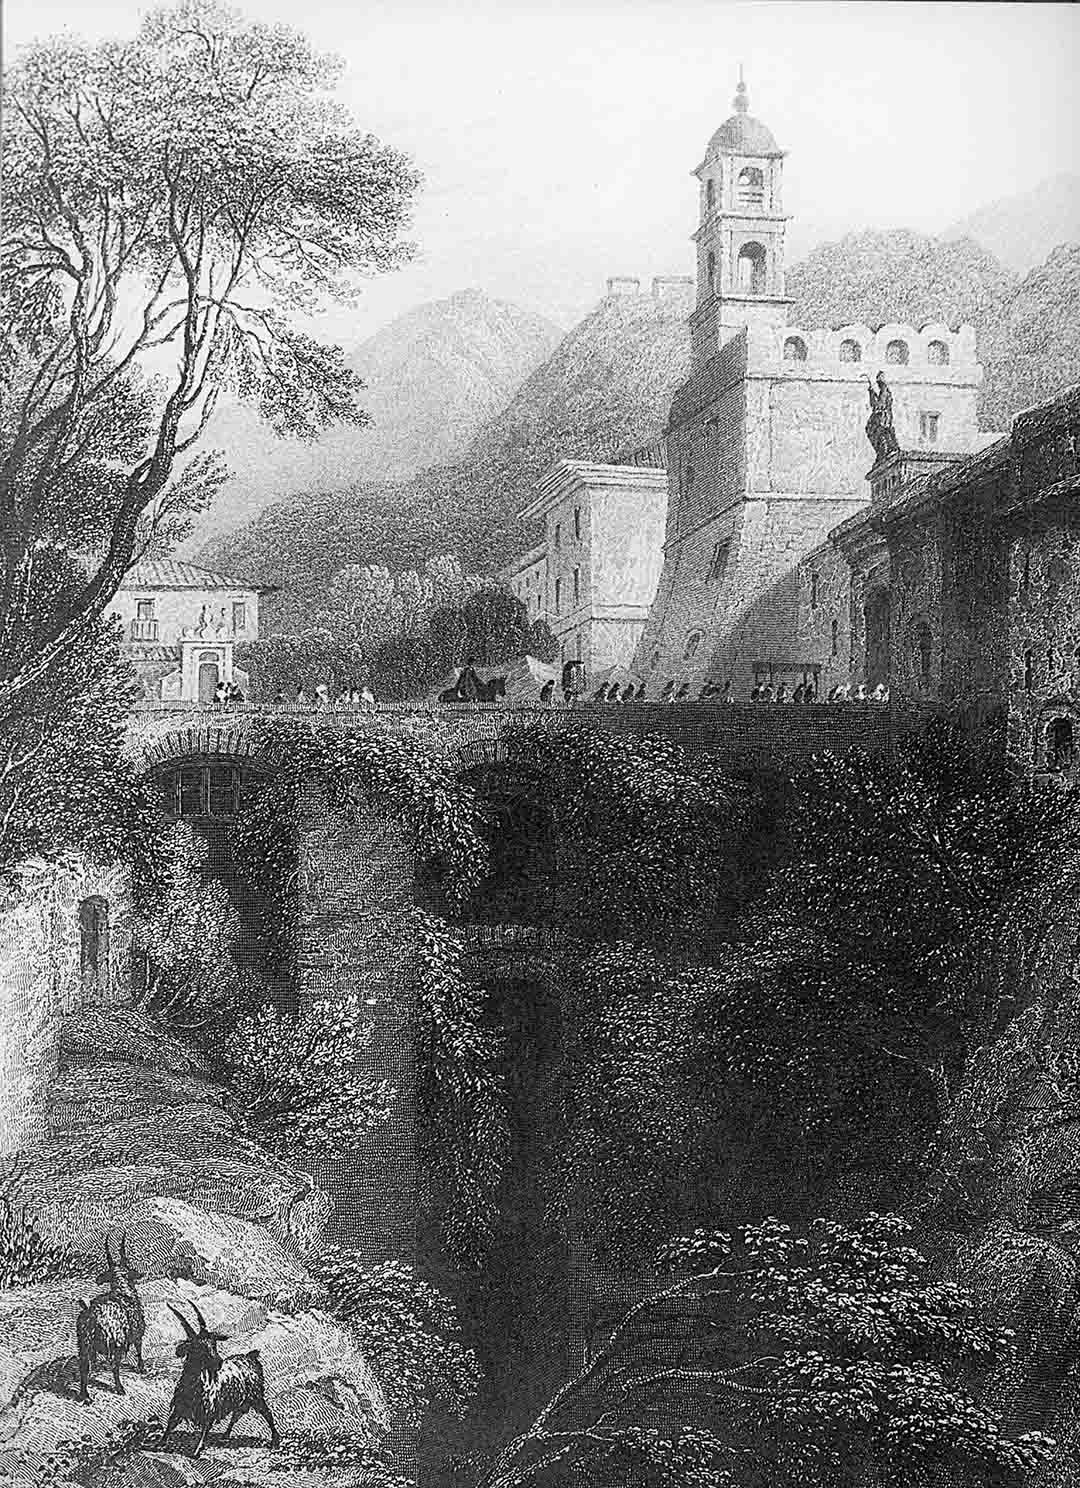 William BROCKEDON - James TIBBITTS WILLMORE, The Gate of Sorrento from the ravine